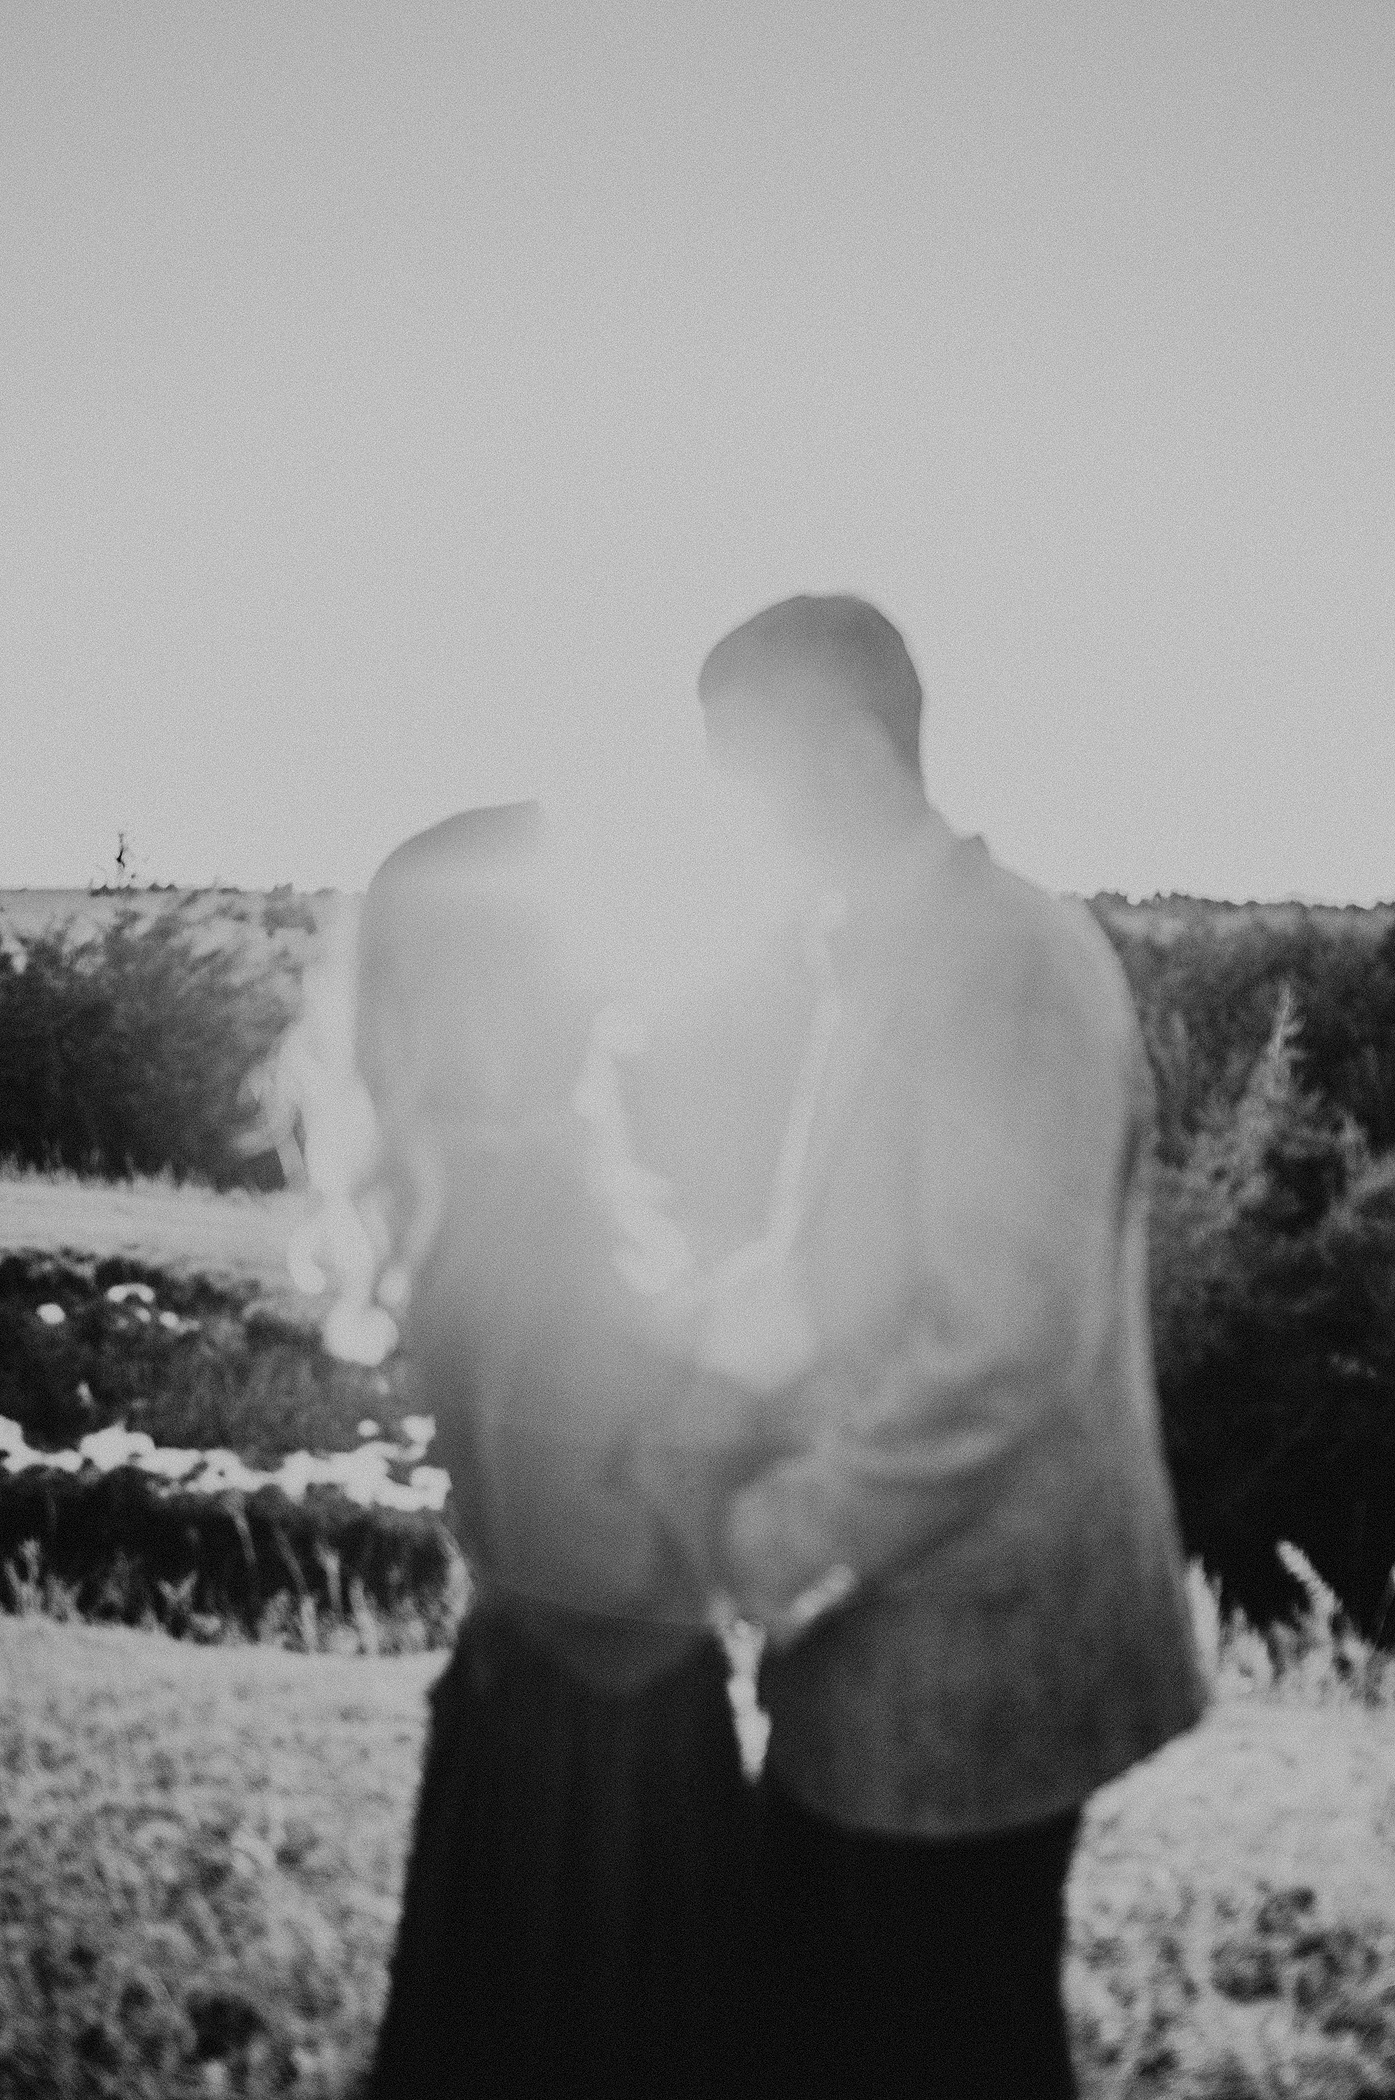 kaylie-sirek-nebraska-wedding-engagement-photographer-photography-grand-island-kearney-hastings-lincoln-49.png